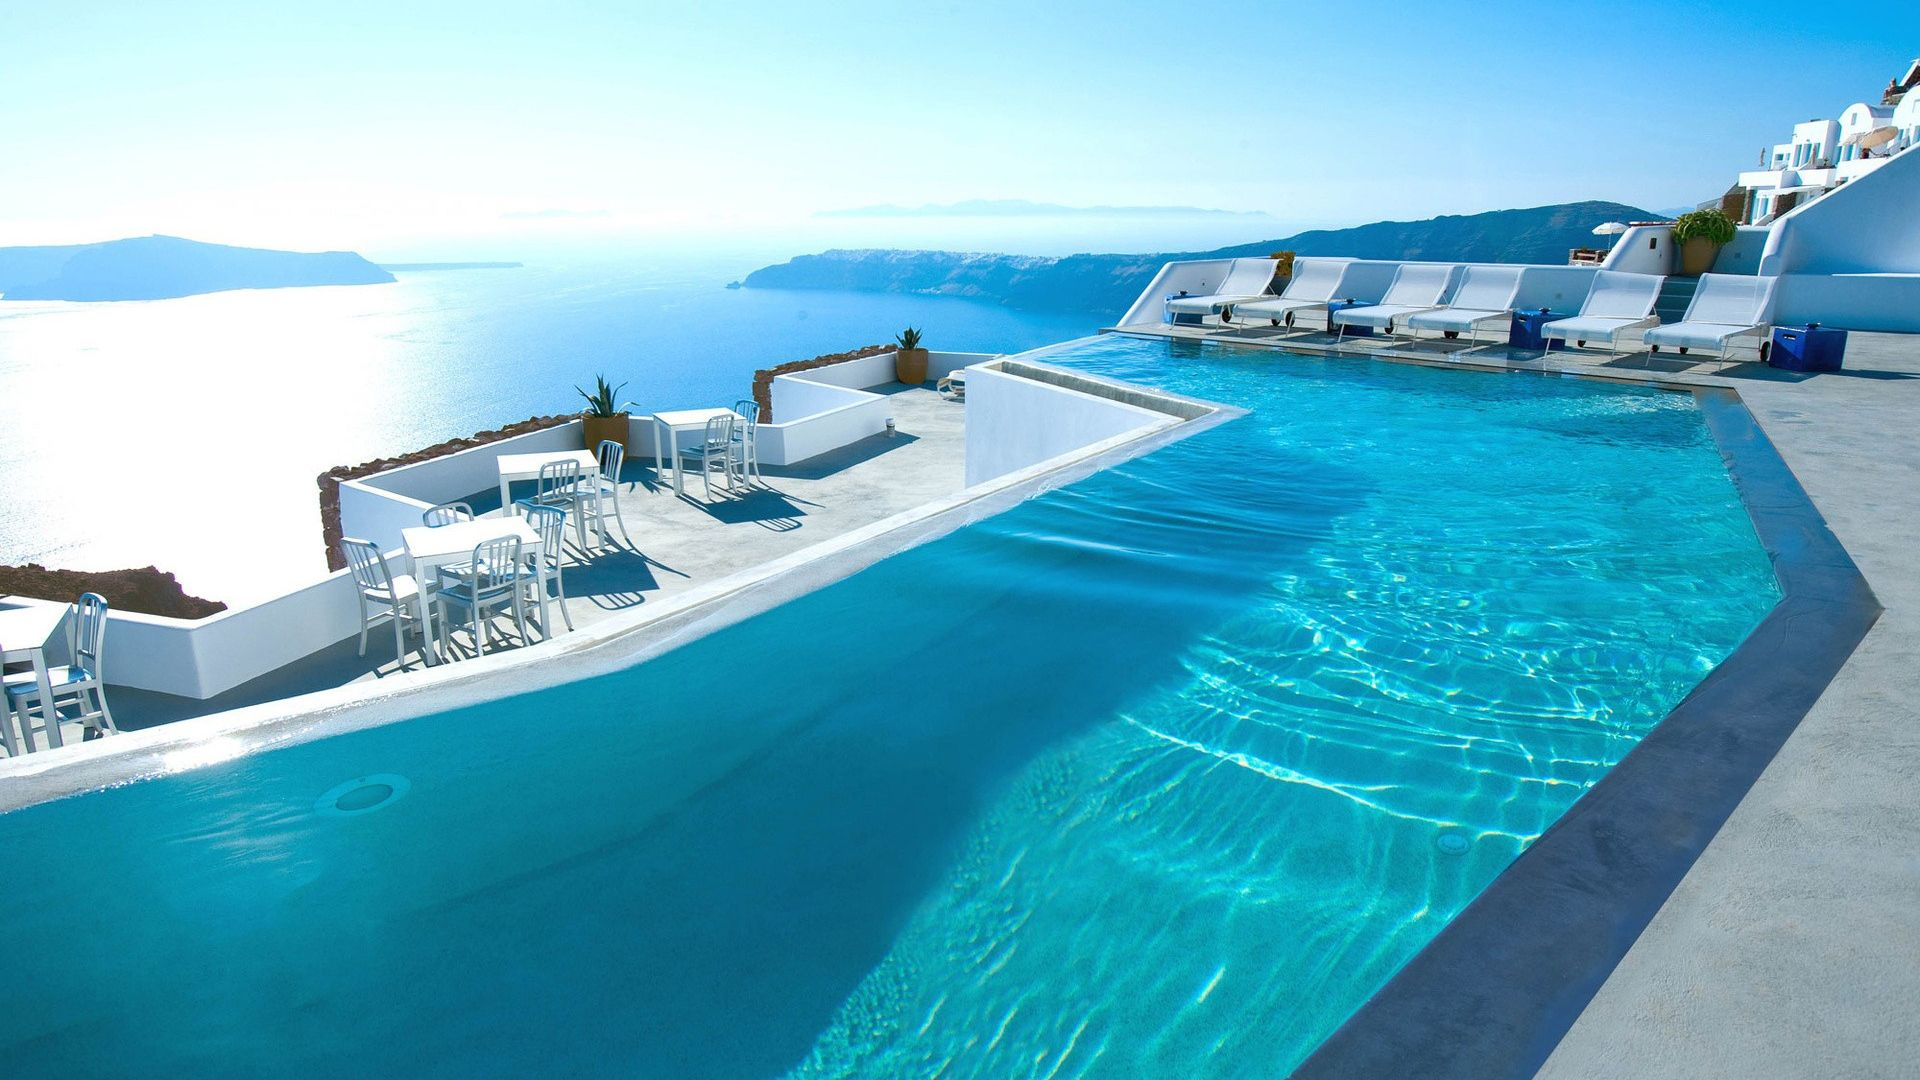 Luxury Hotel Pool Holiday Hd Wallpaper 1920 1080 11251 What